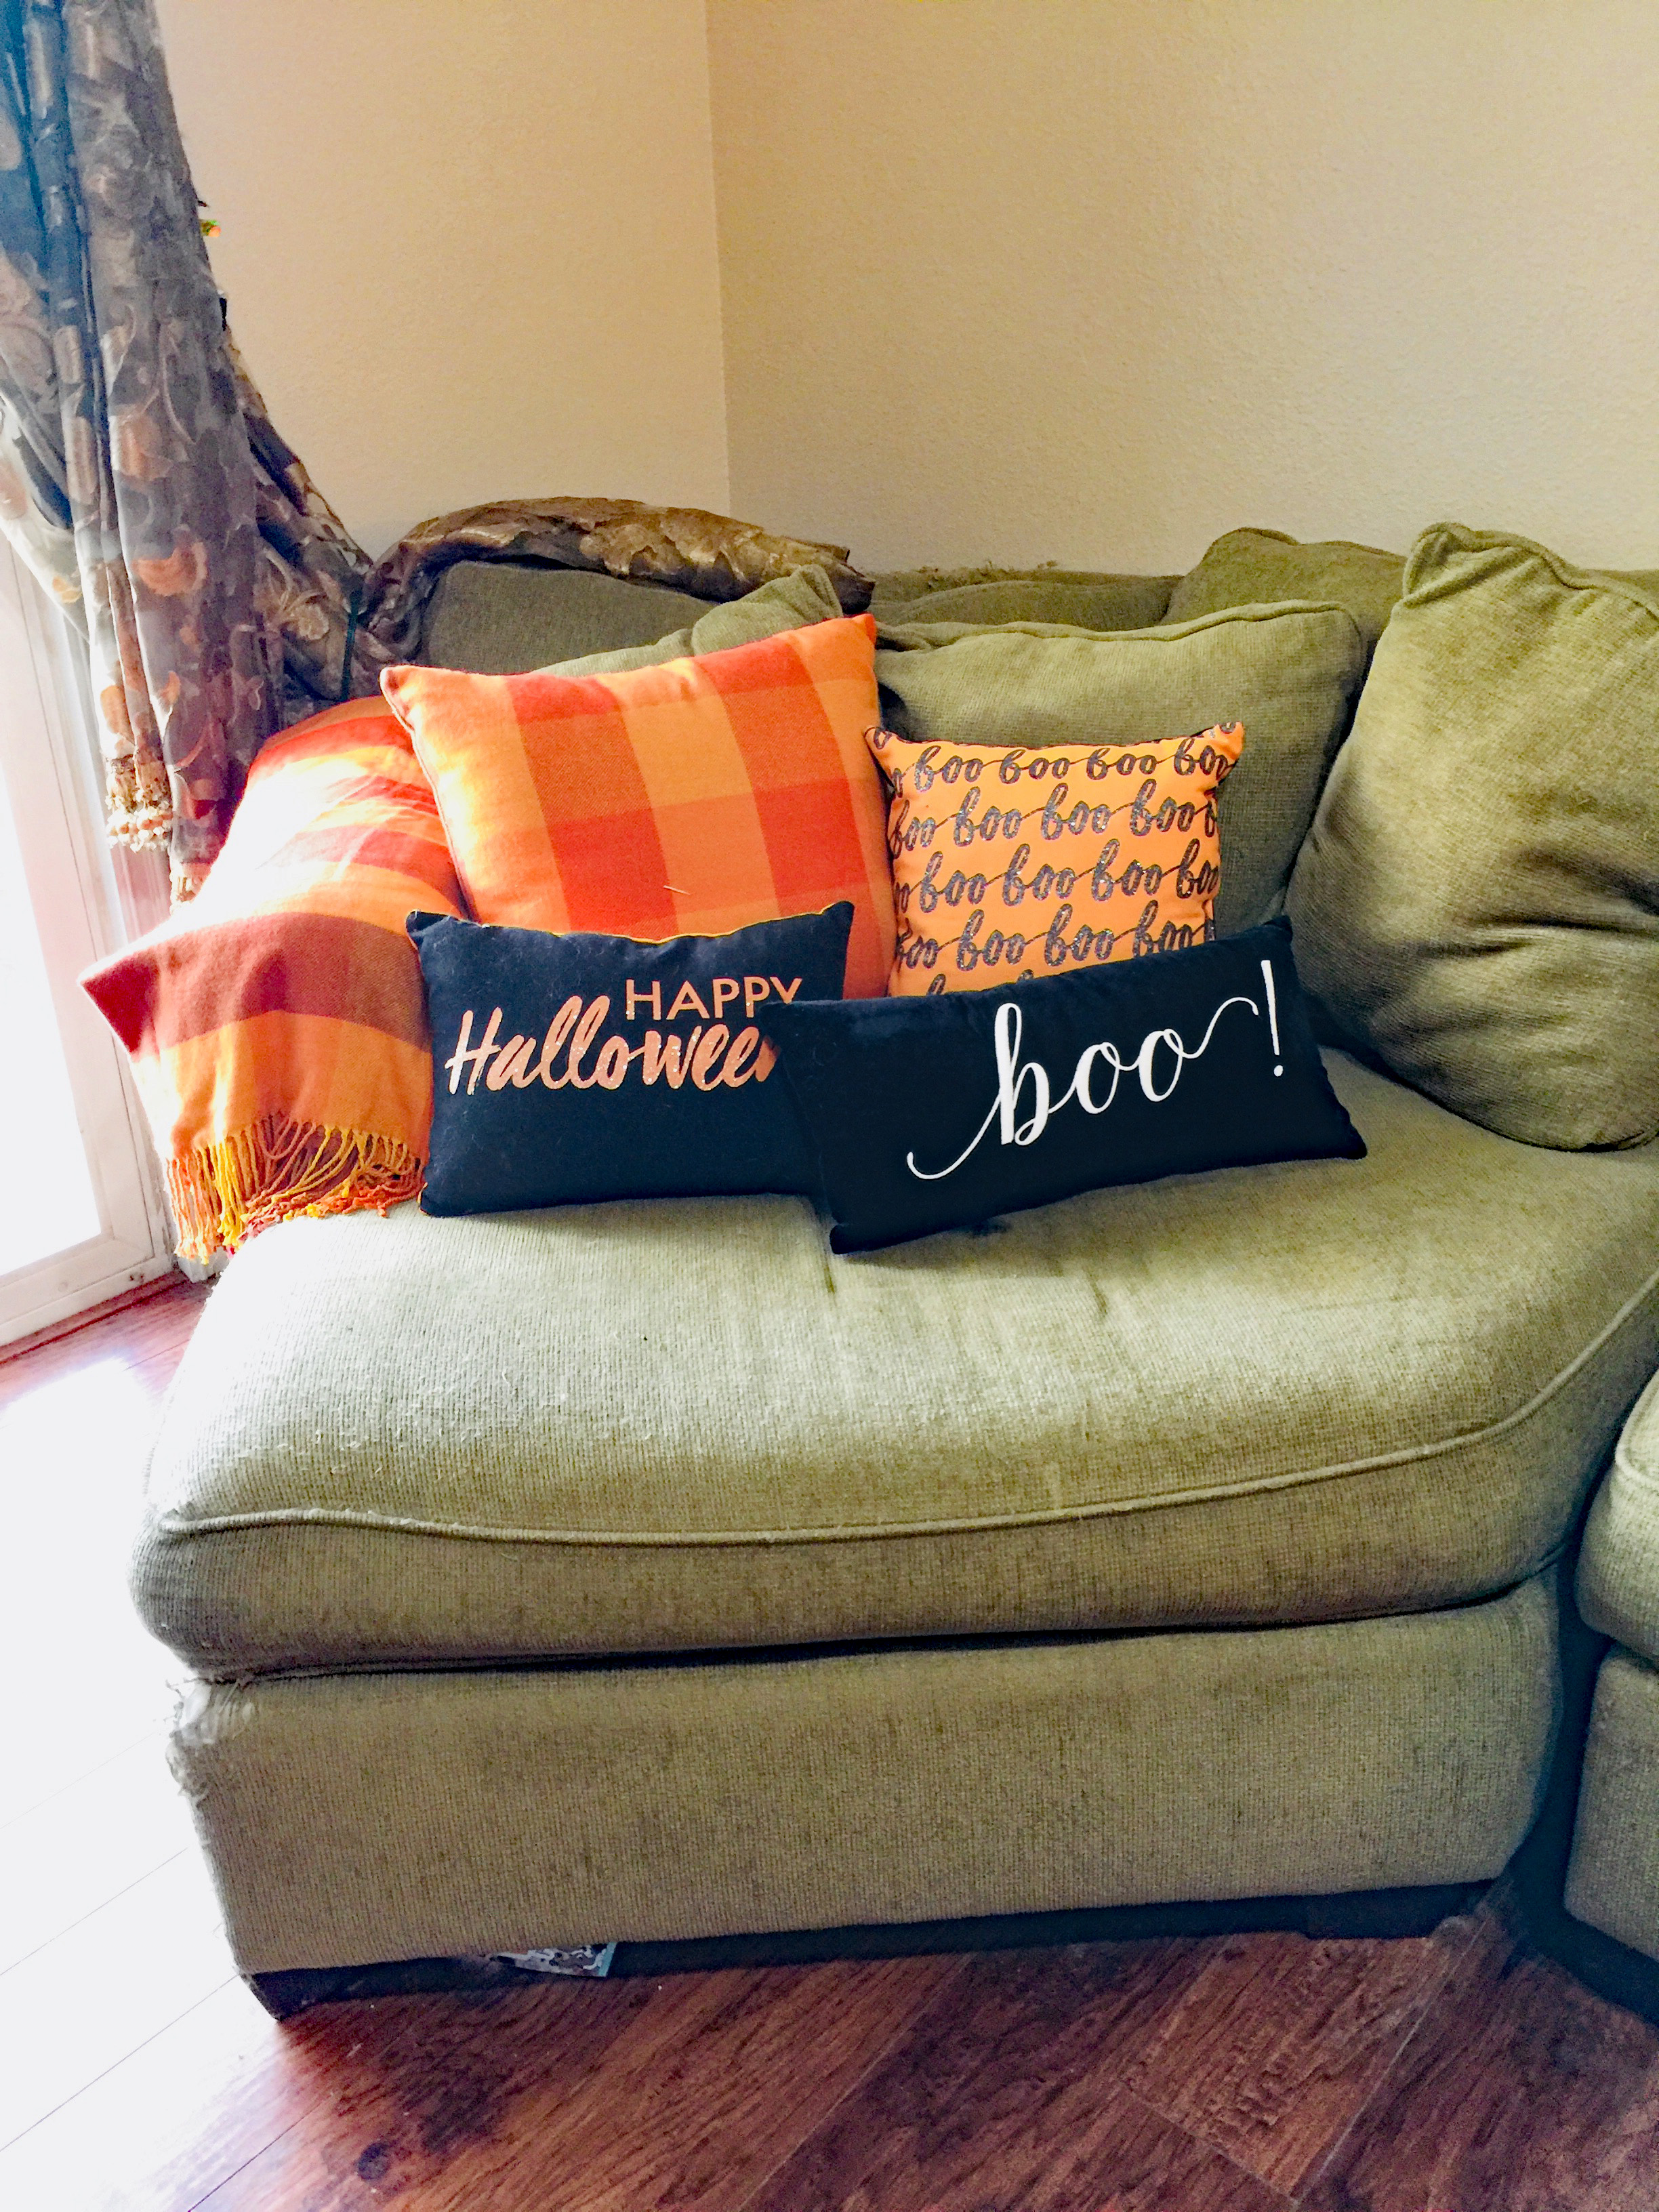 Shiny Tin Foil Blog Archive Halloween Decorations Indoor Edition 2017